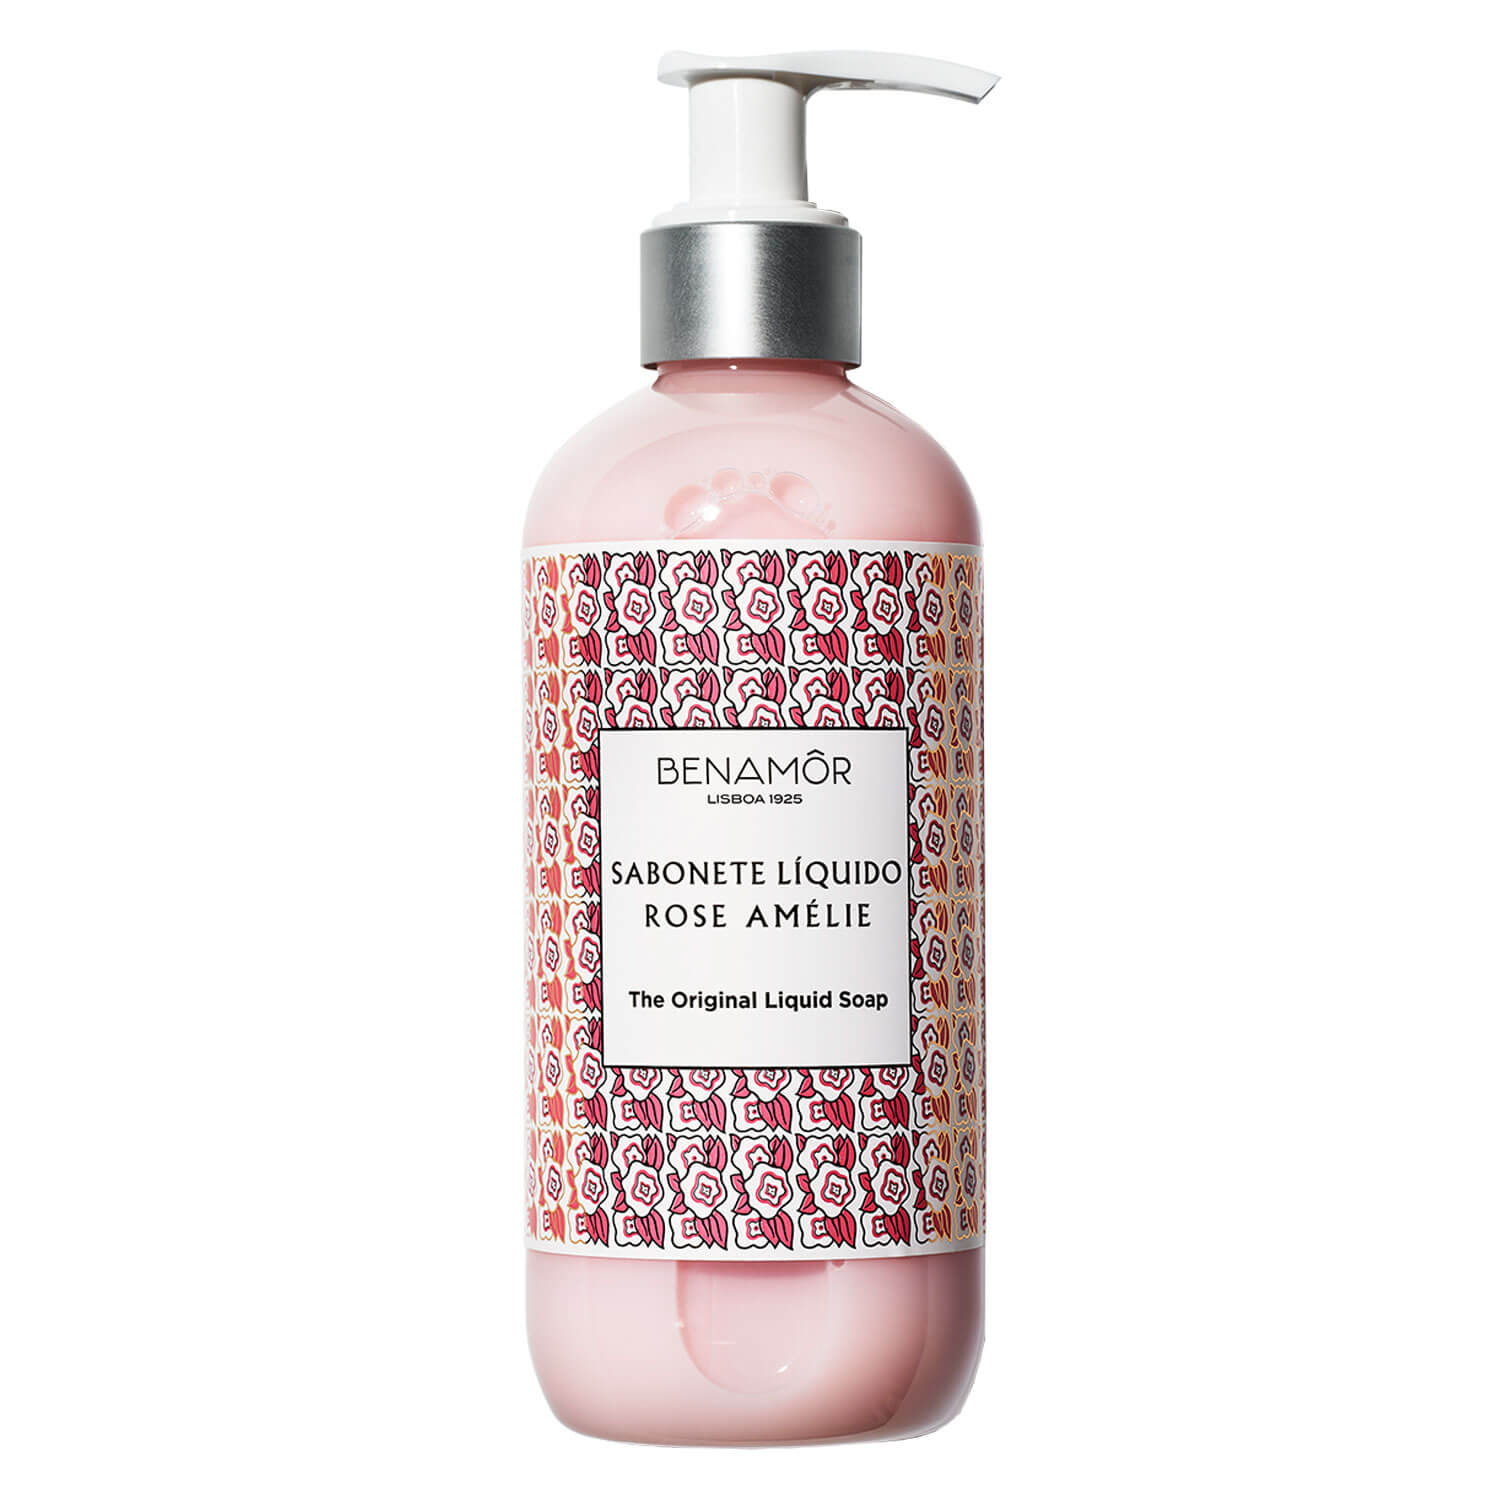 Rose Amélie - The Original Liquid Soap